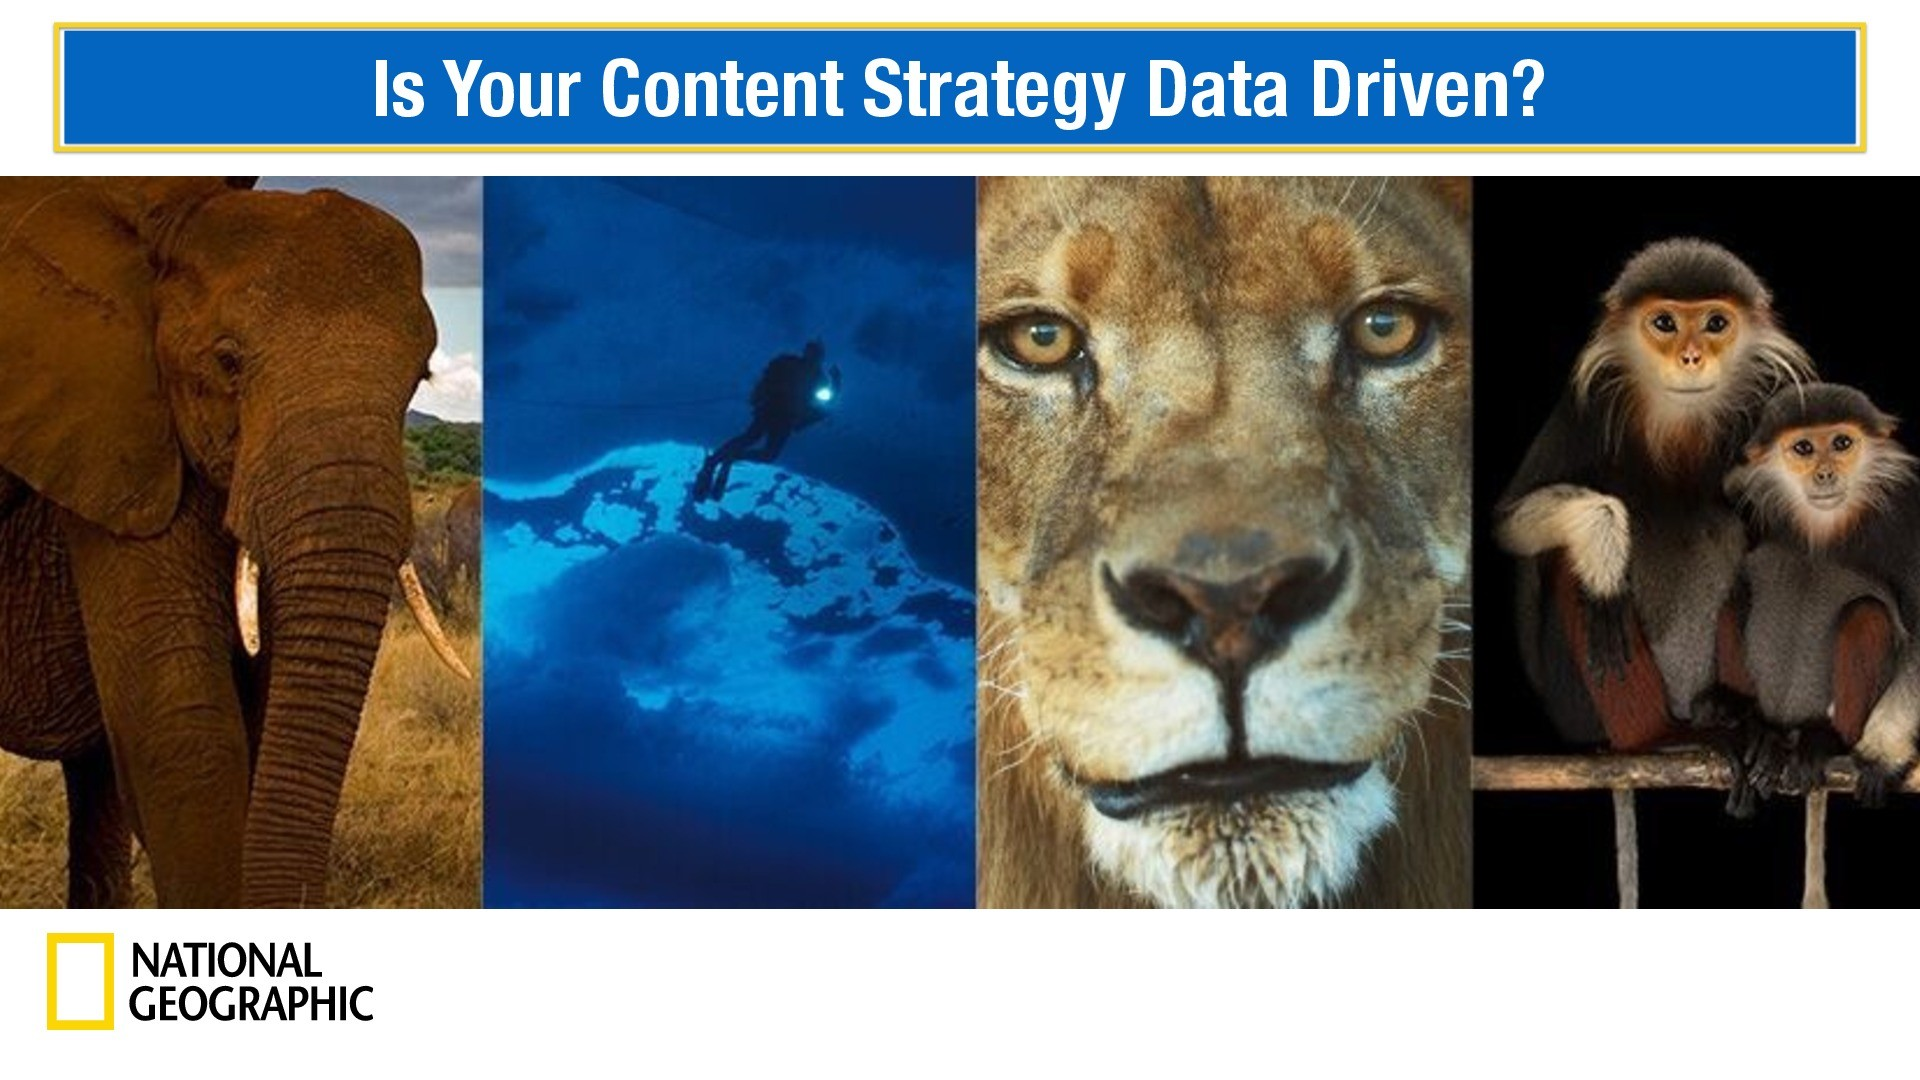 Is Your Content Strategy Data-Driven?